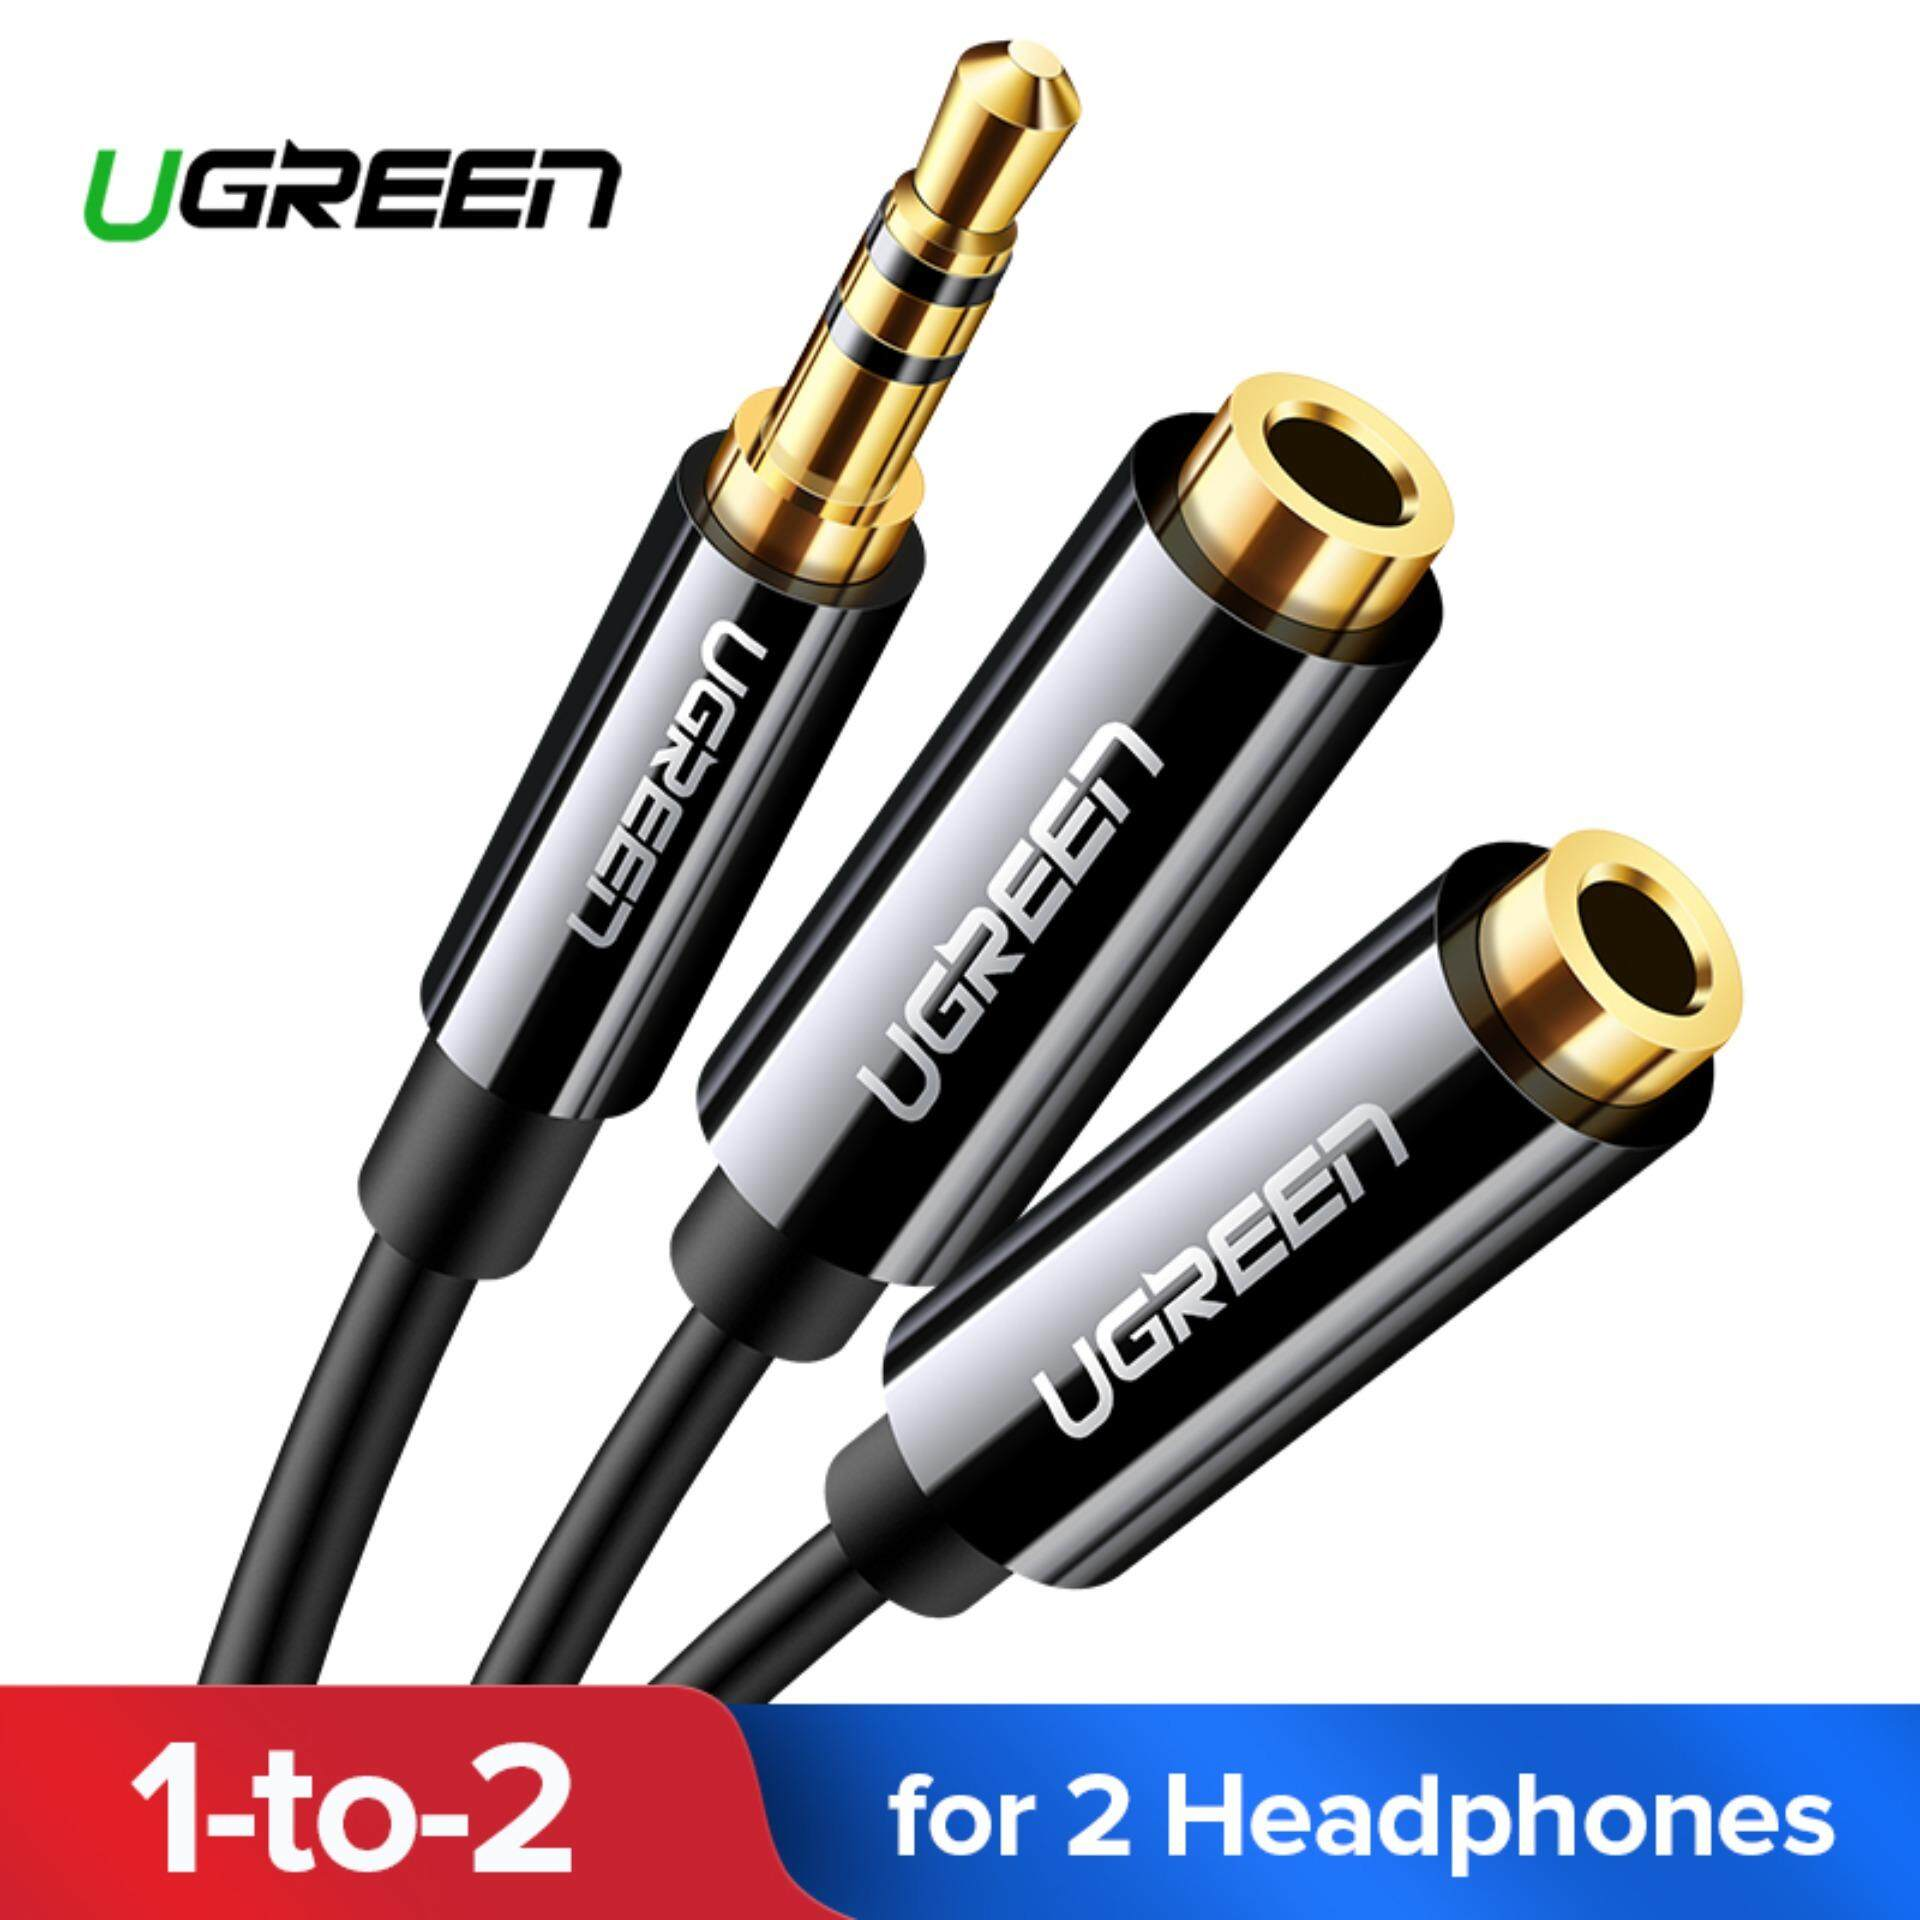 Ugreen 3.5mm Jack Earphone Audio Splitter Adapter 1 Male To 2 Female Extension Aux Cable For Car Mp3/4 Cd Player Black By Ugreen Flagship Store.